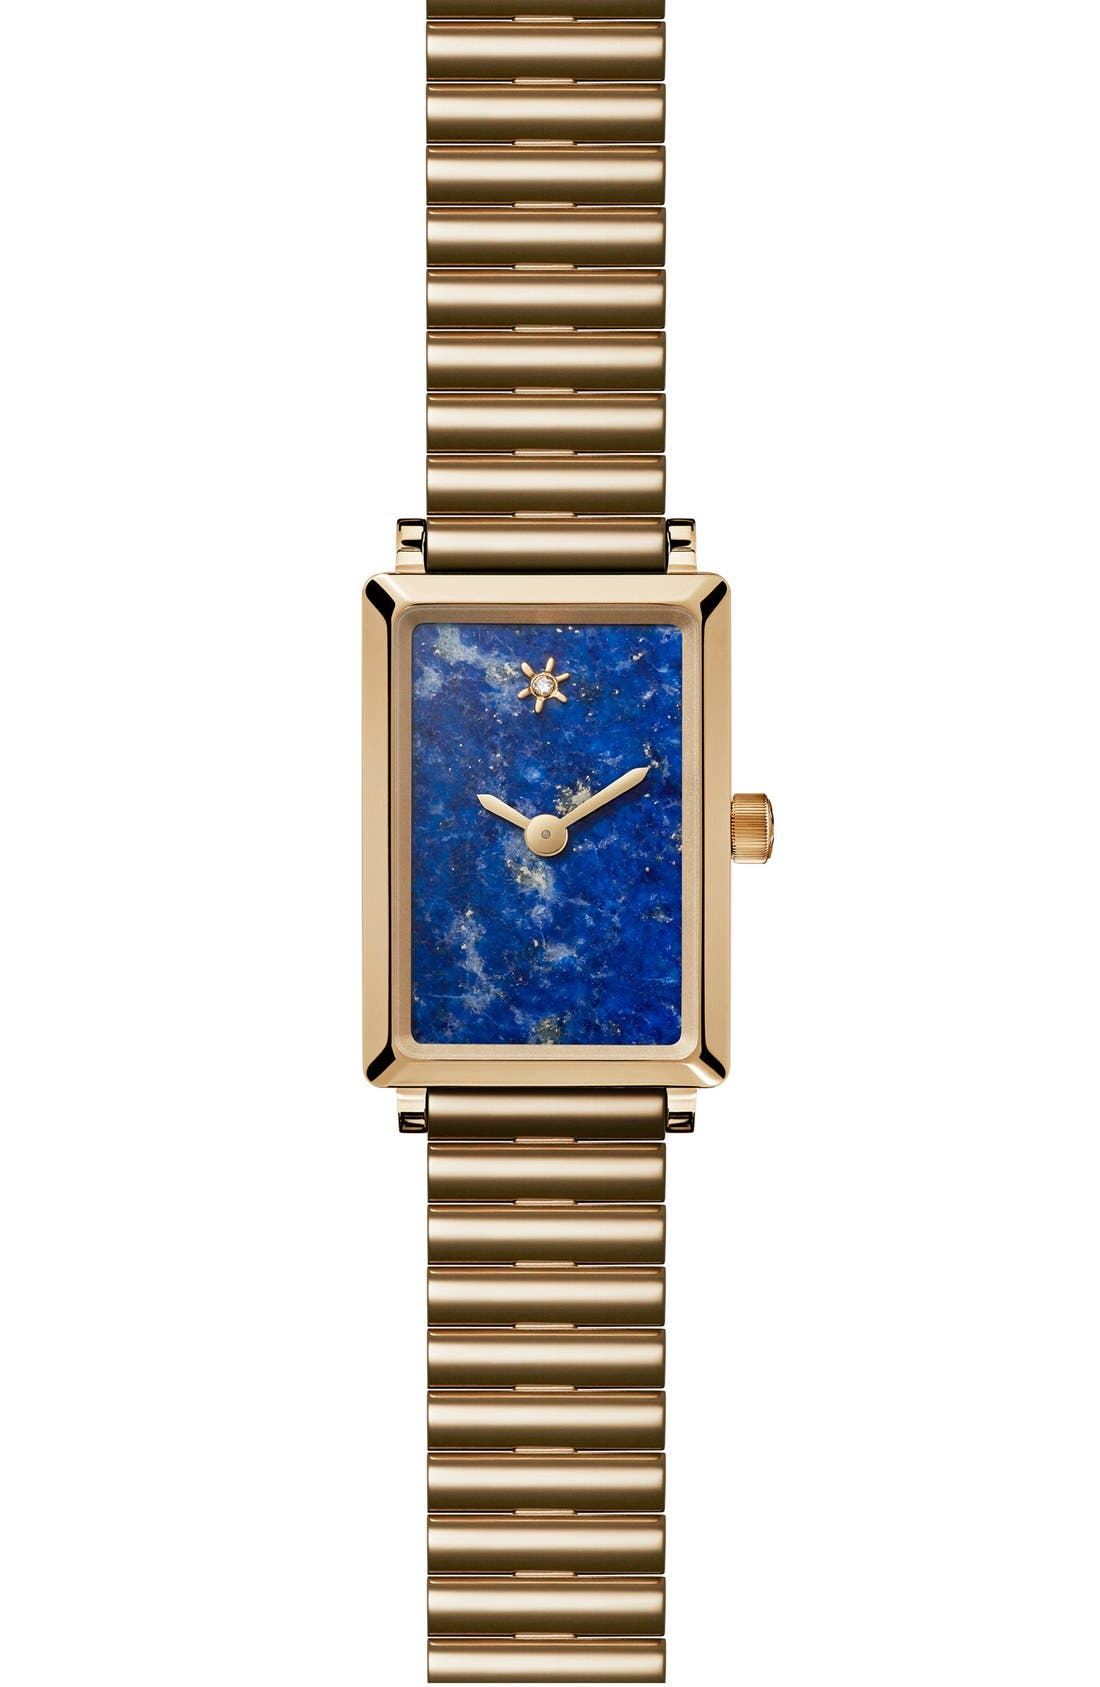 GOMELSKY The Shirley Fromer Bracelet Watch, 18mm x 26mm